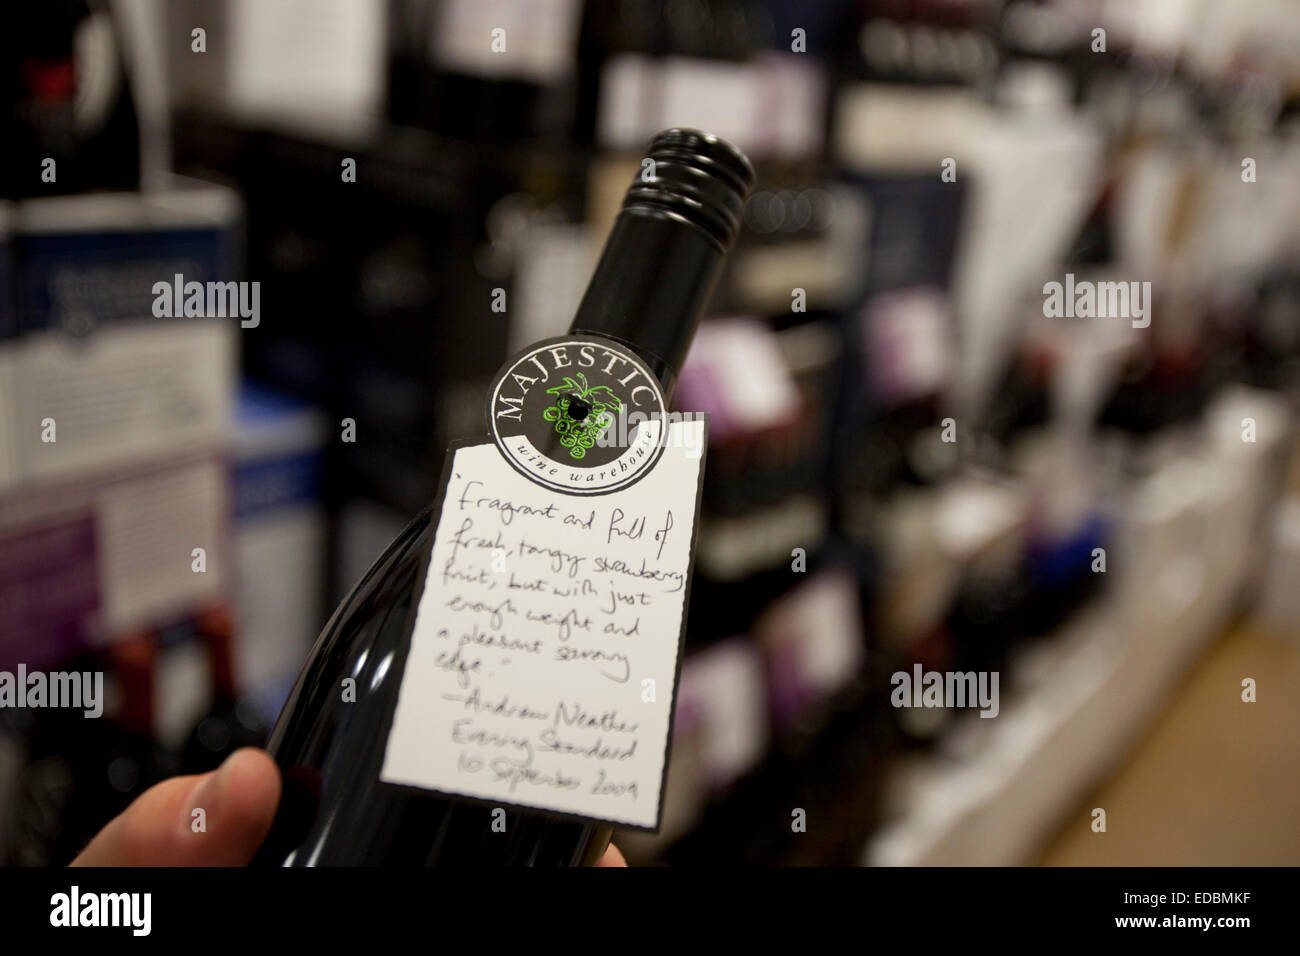 A customer reading the wine description of his selected bottle. - Stock Image